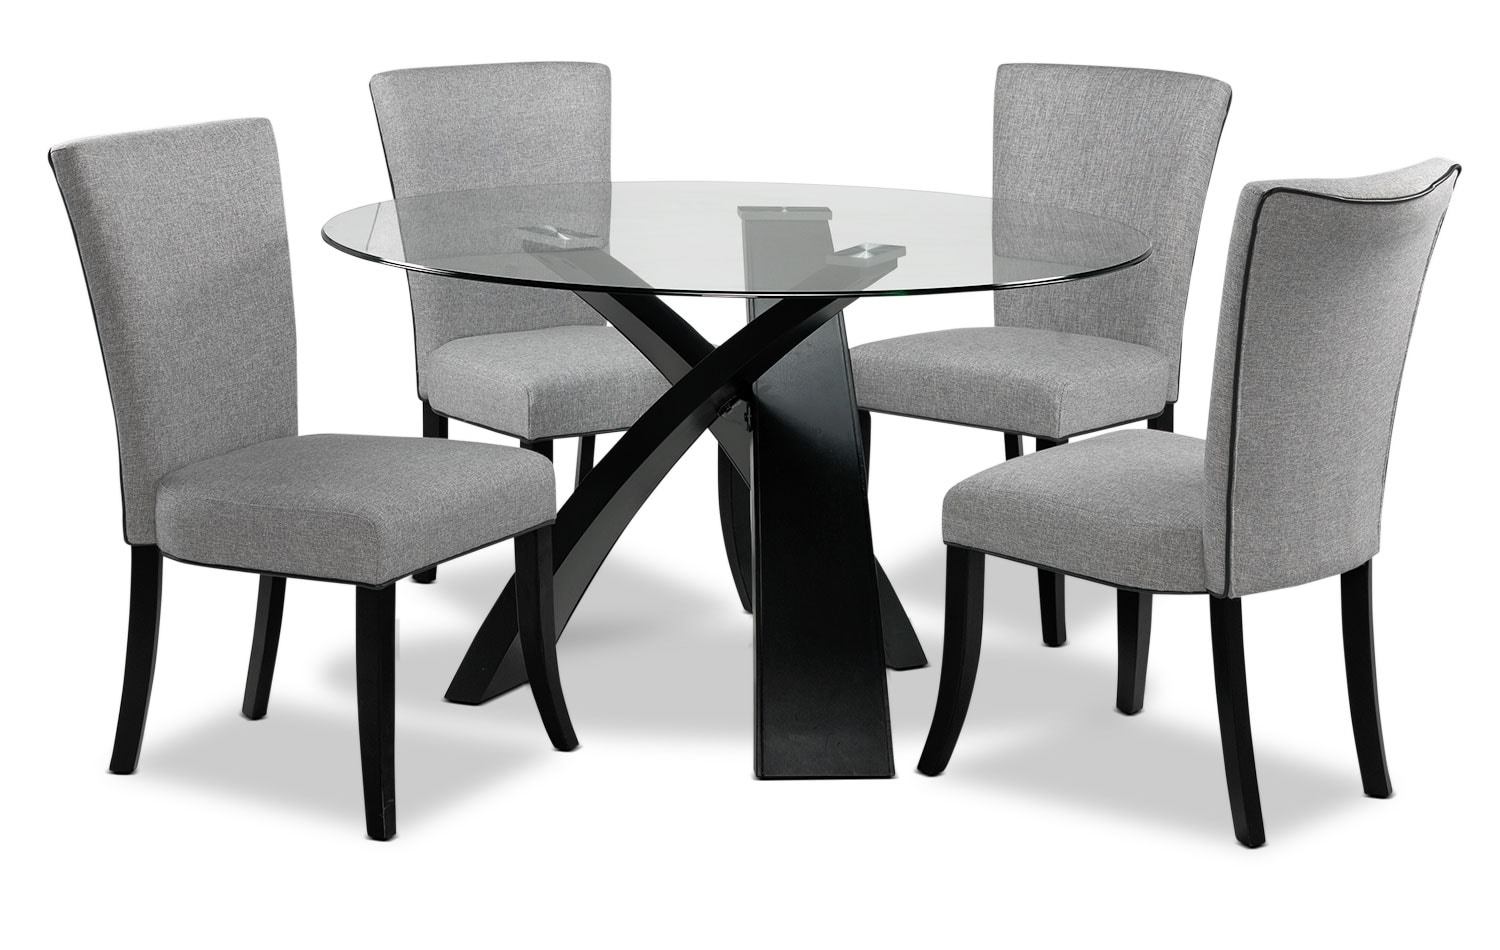 Astro 5-Piece Dinette Set - Grey